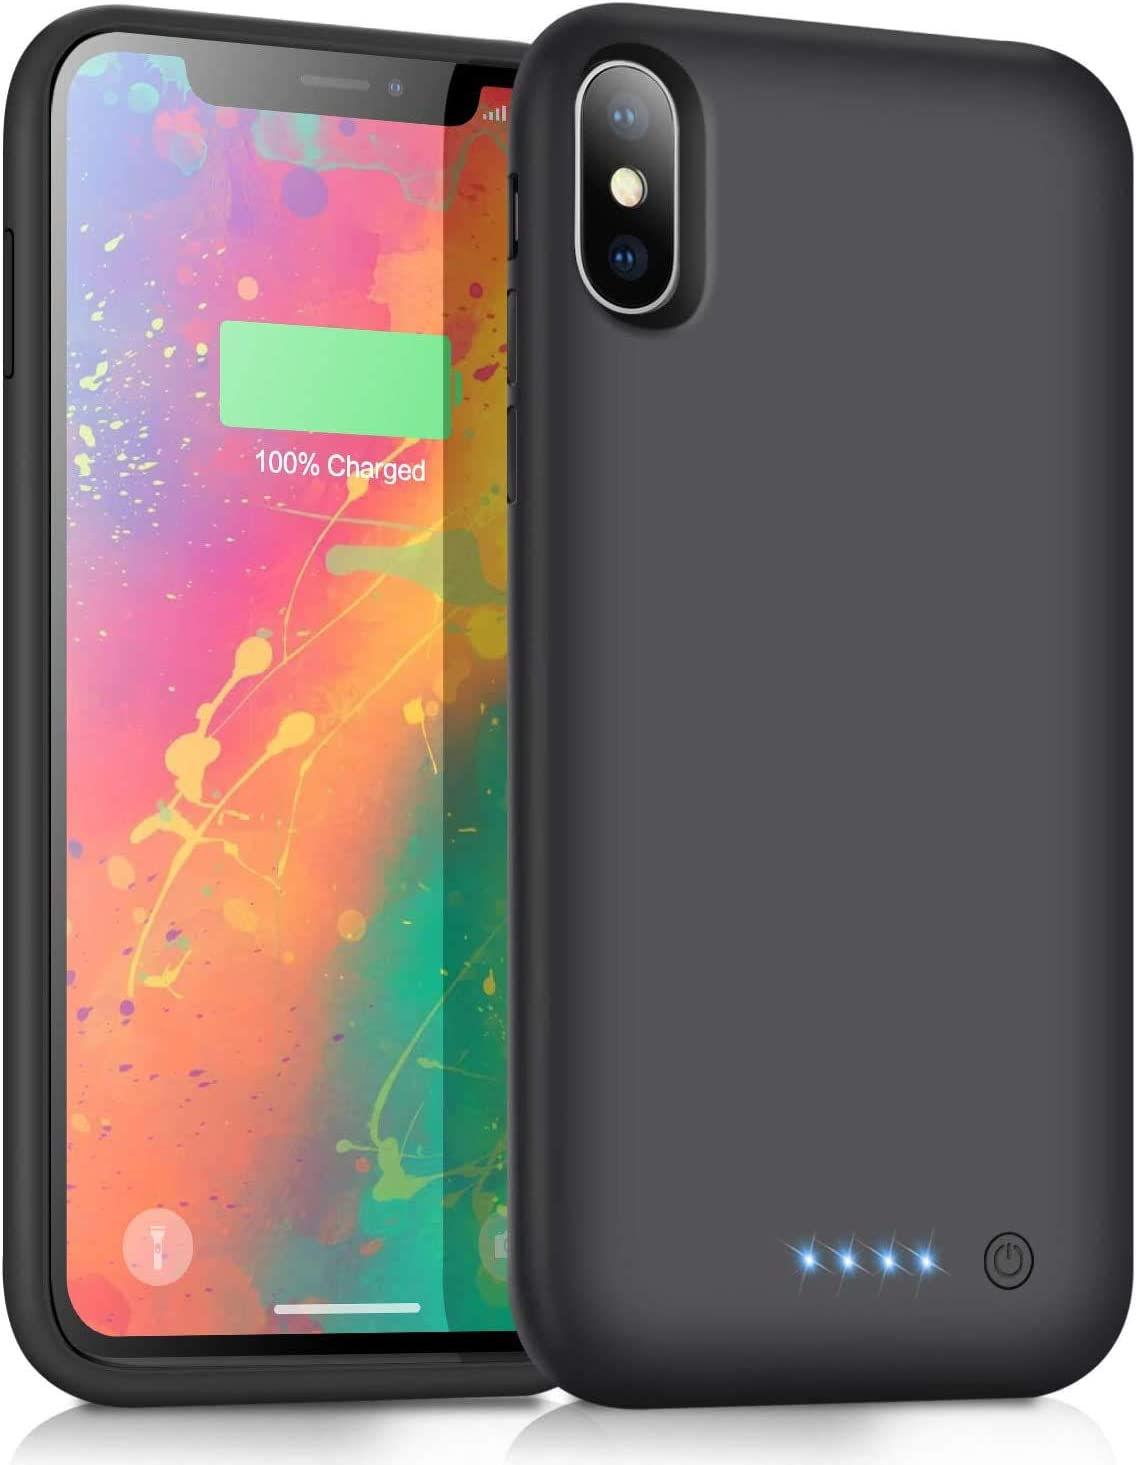 Xooparc Battery case for iPhone Xs Max [7800mah] Upgraded Charging Case Protective Portable Charger Case Rechargeable Extended Battery Pack for Apple iPhone Xs Max Charger case (6.5') Backup